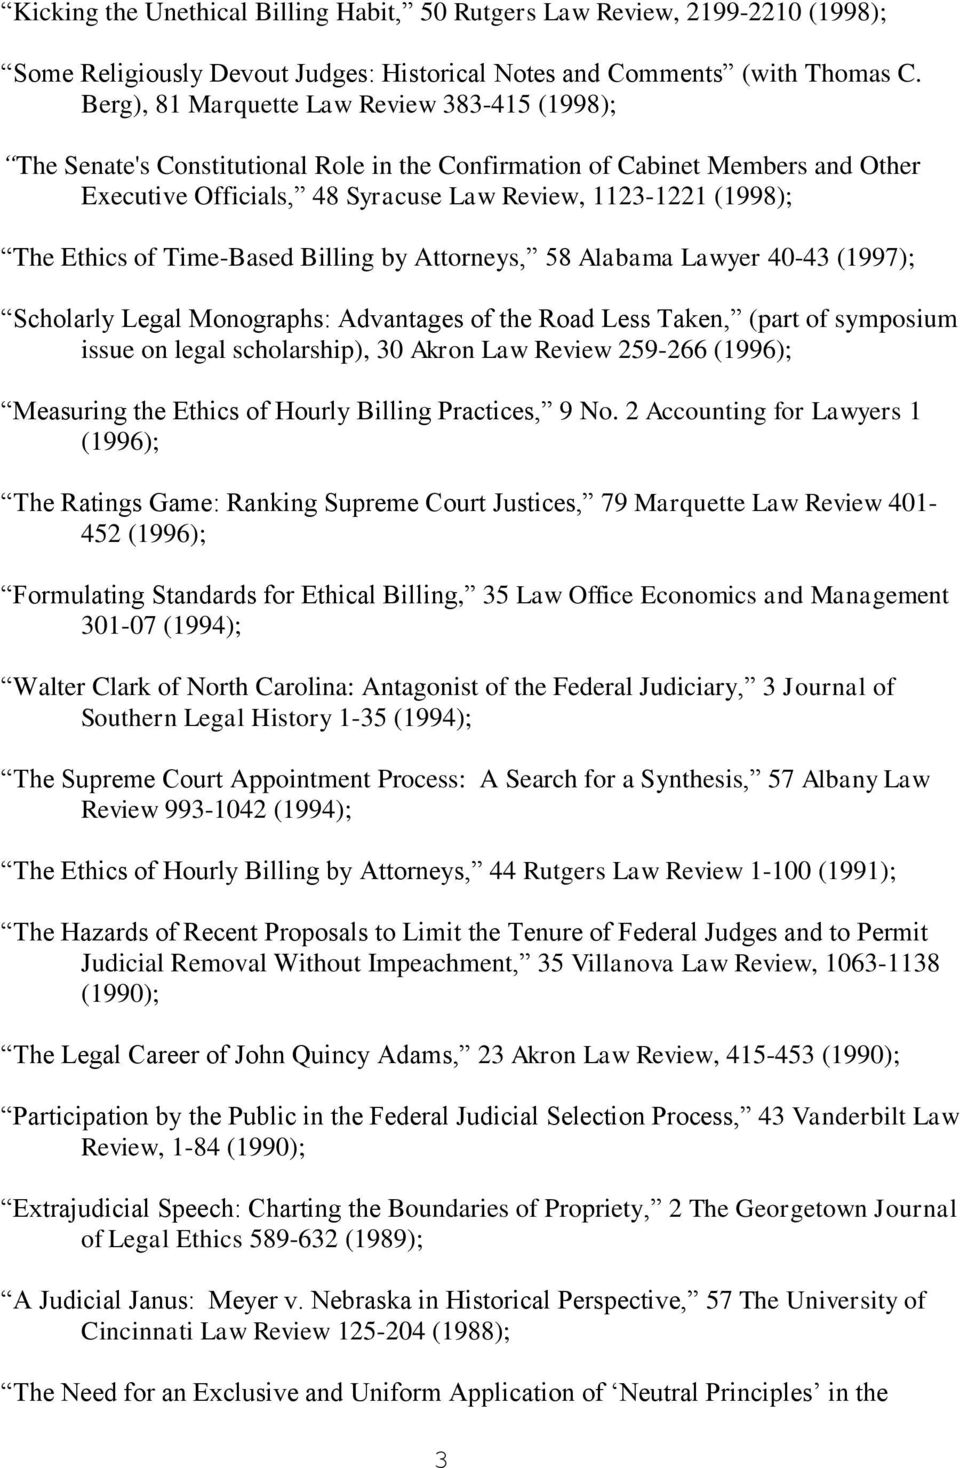 Ethics of Time-Based Billing by Attorneys, 58 Alabama Lawyer 40-43 (1997); Scholarly Legal Monographs: Advantages of the Road Less Taken, (part of symposium issue on legal scholarship), 30 Akron Law